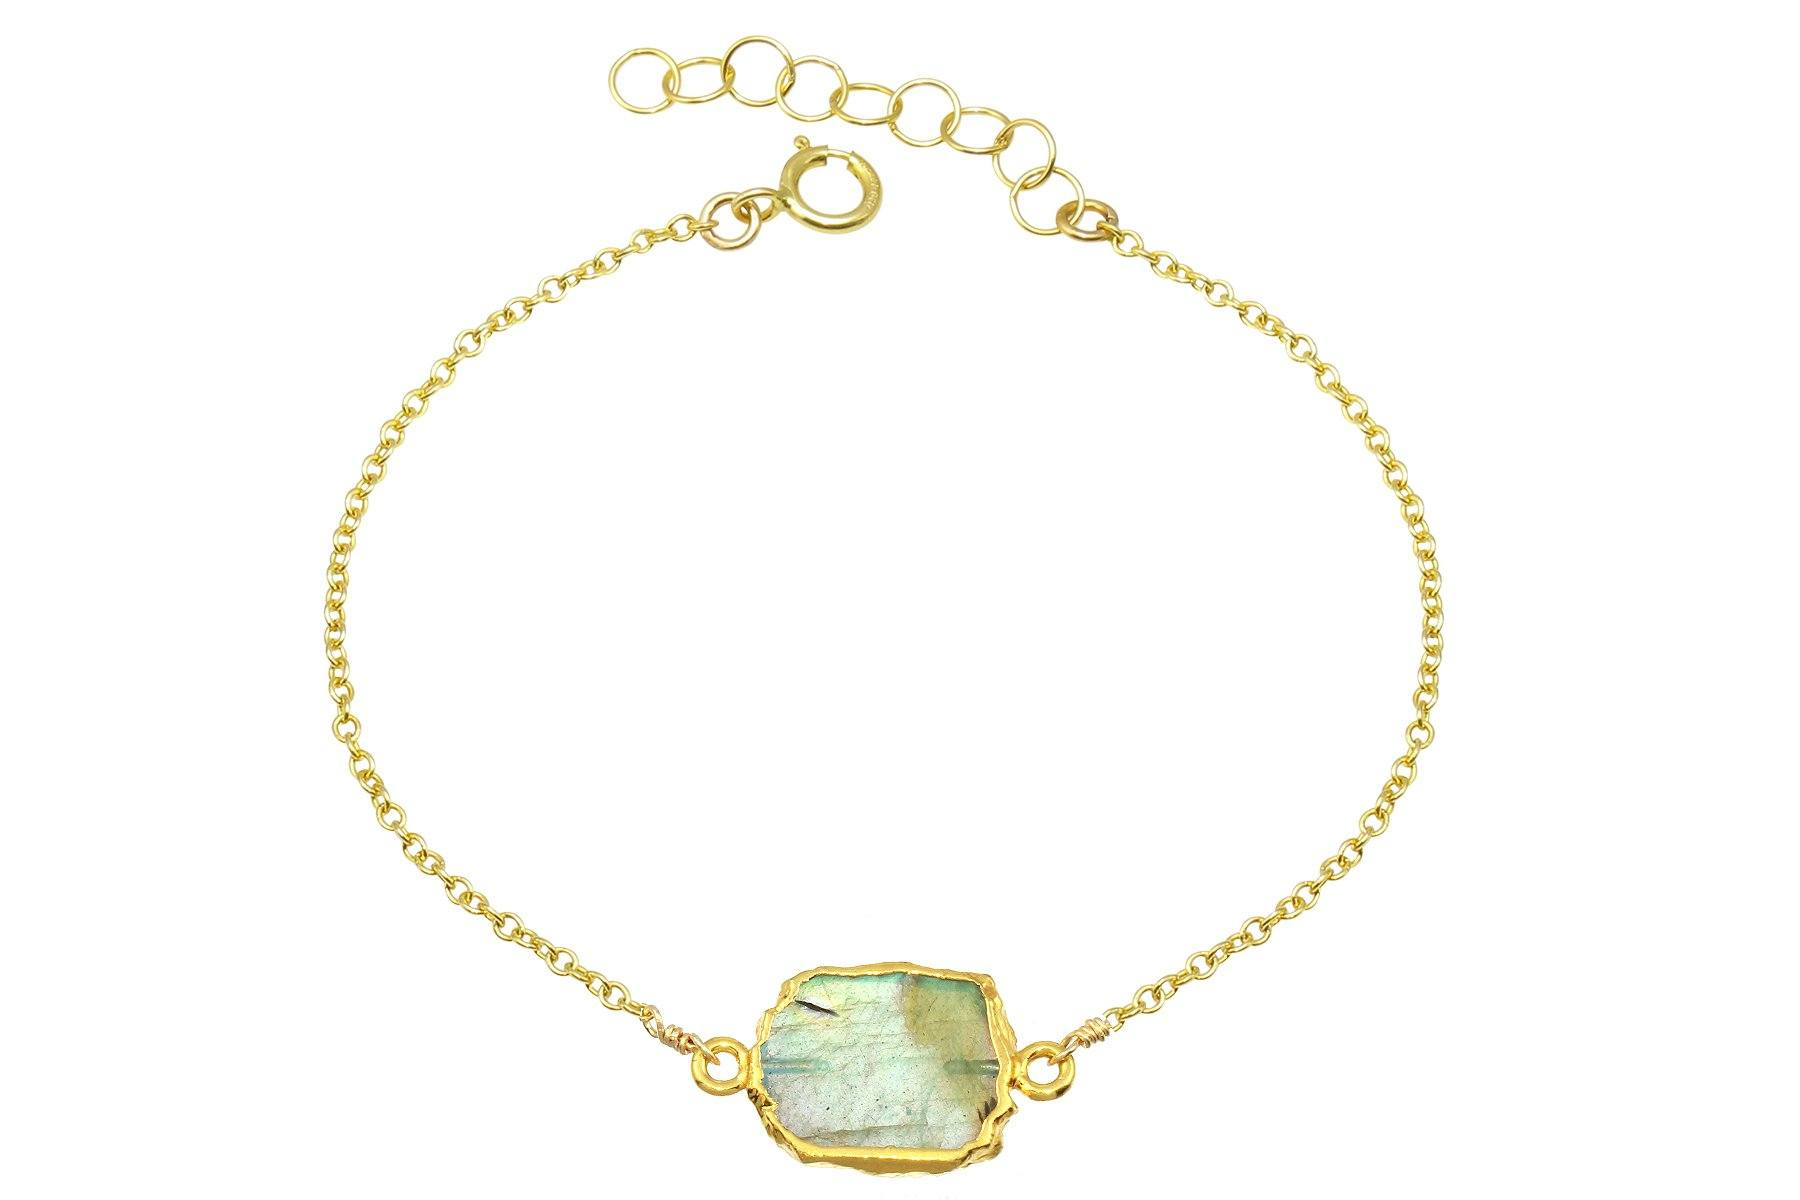 Rhea labradorite 14k yellow gold filled adjustable chain bracelet